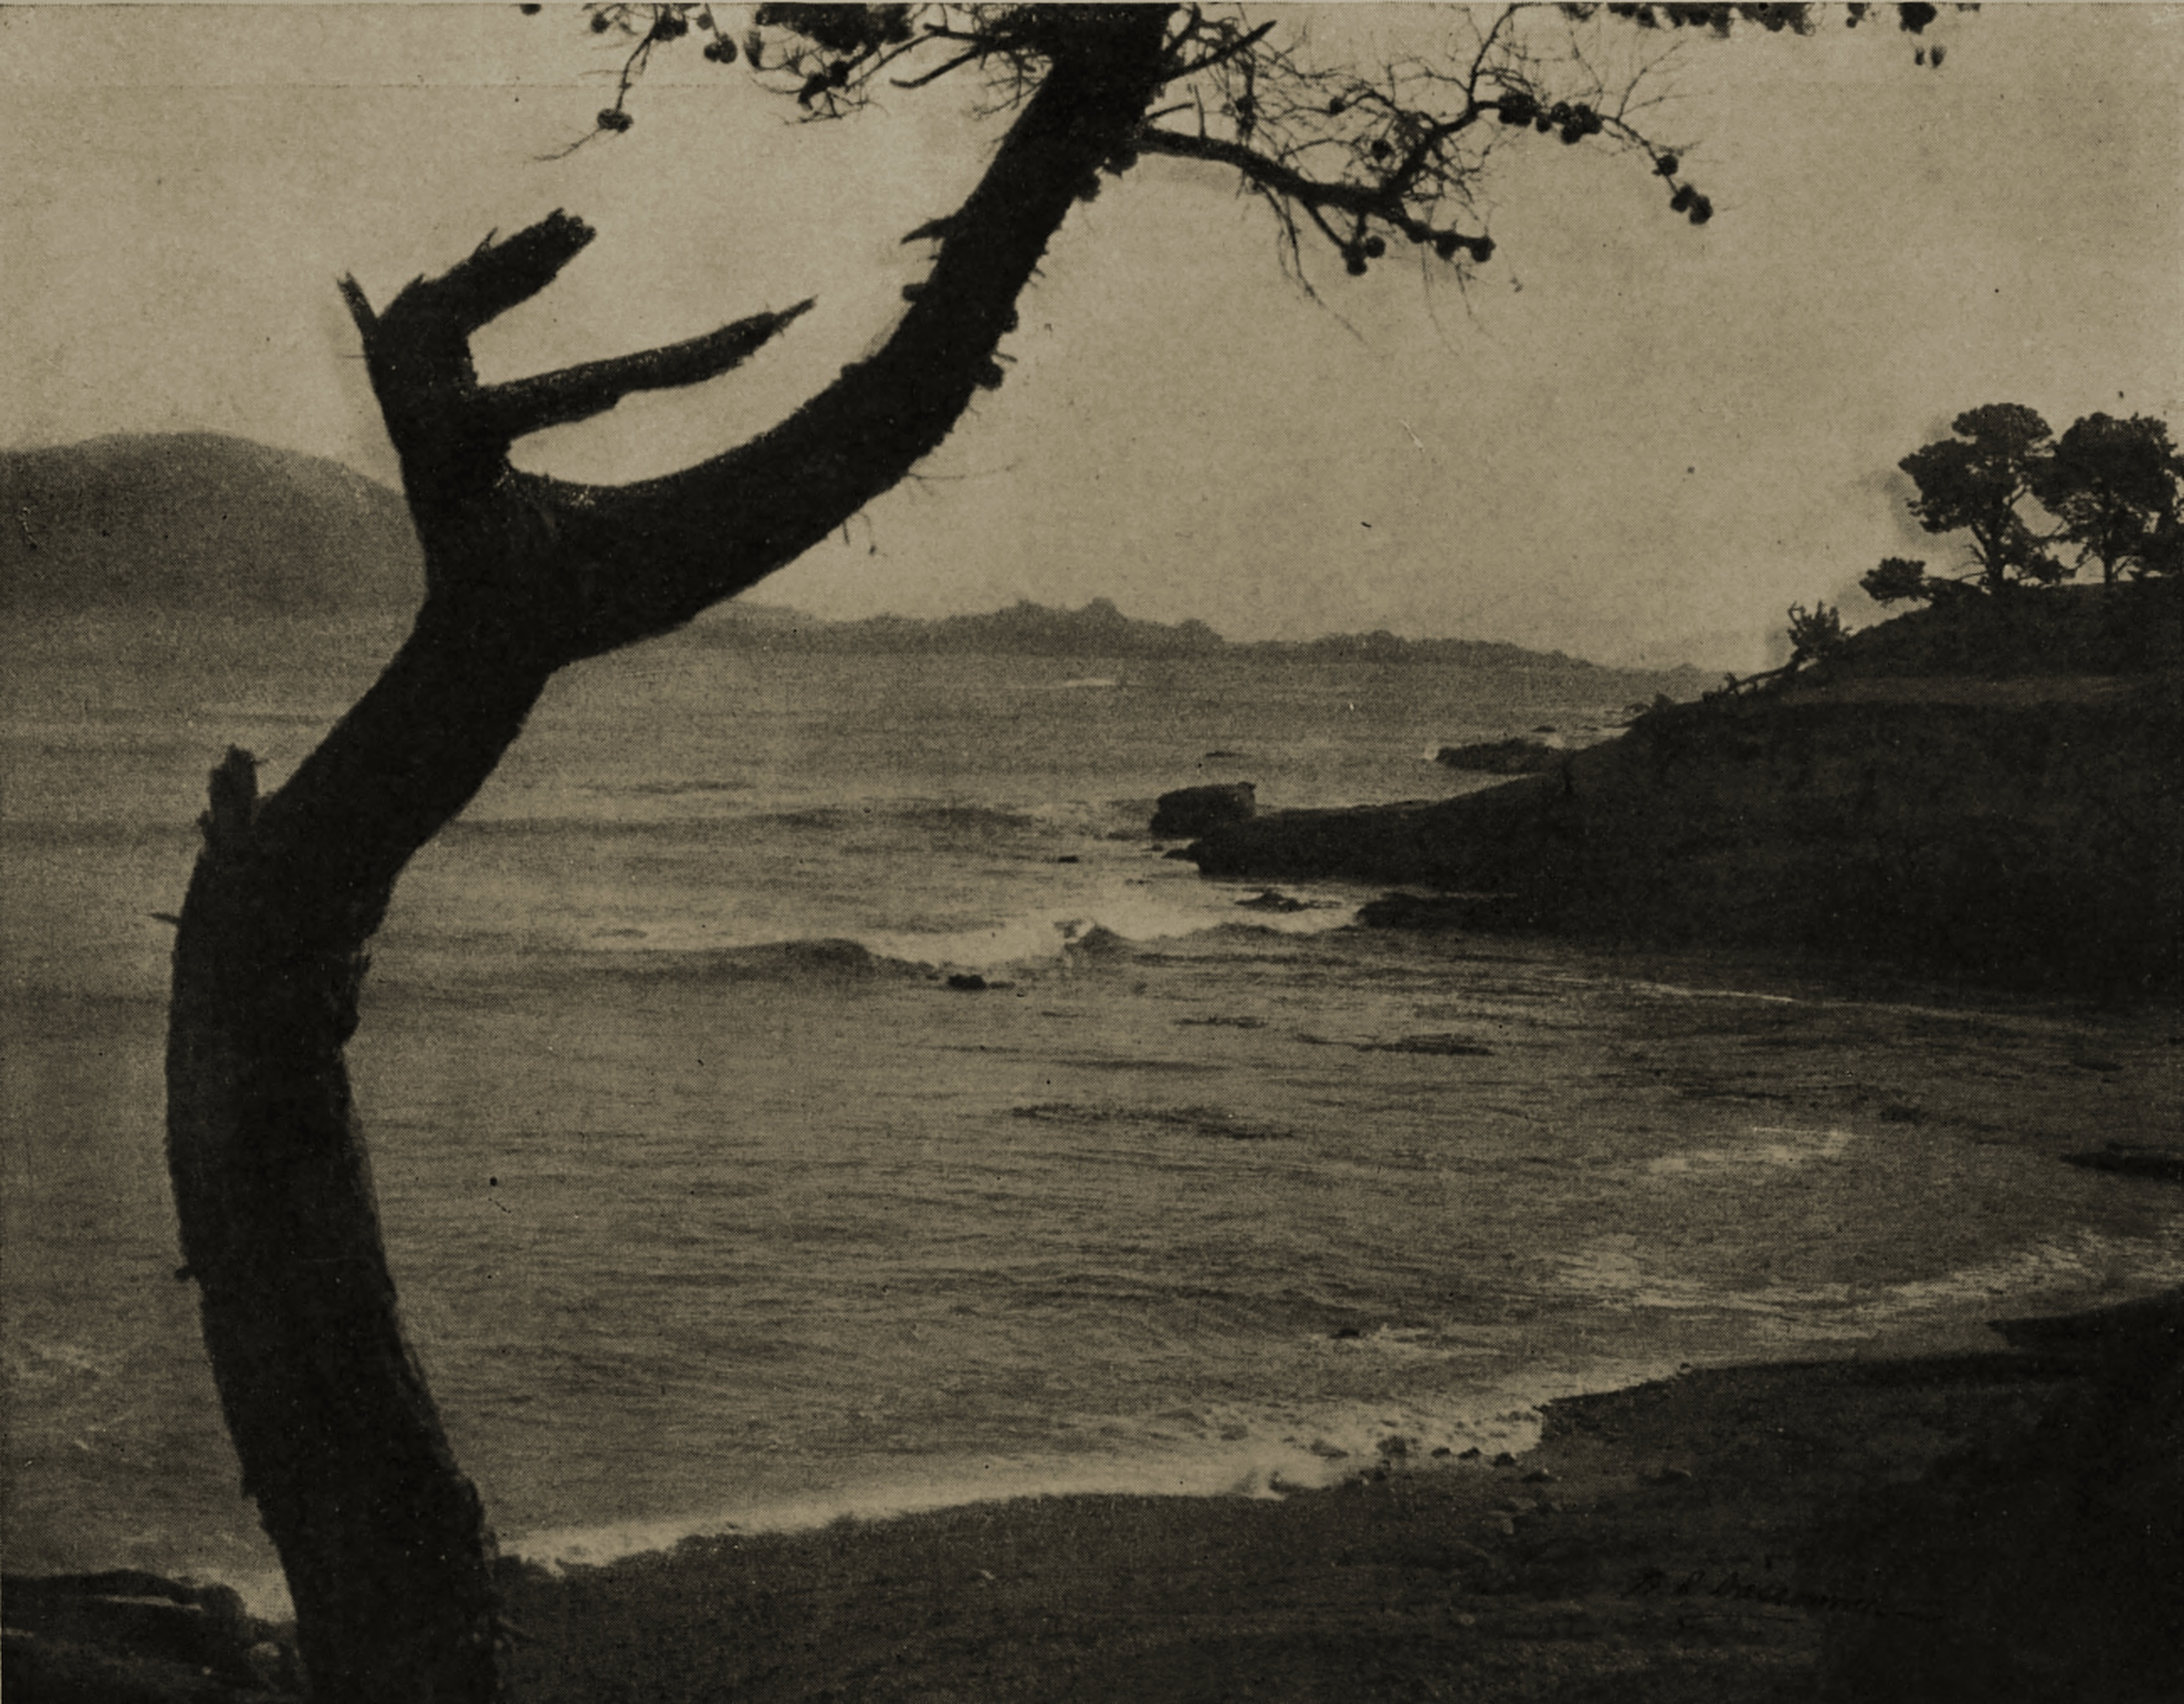 The Monterey Coast, California, USA by W. E. Dassonville about 1908